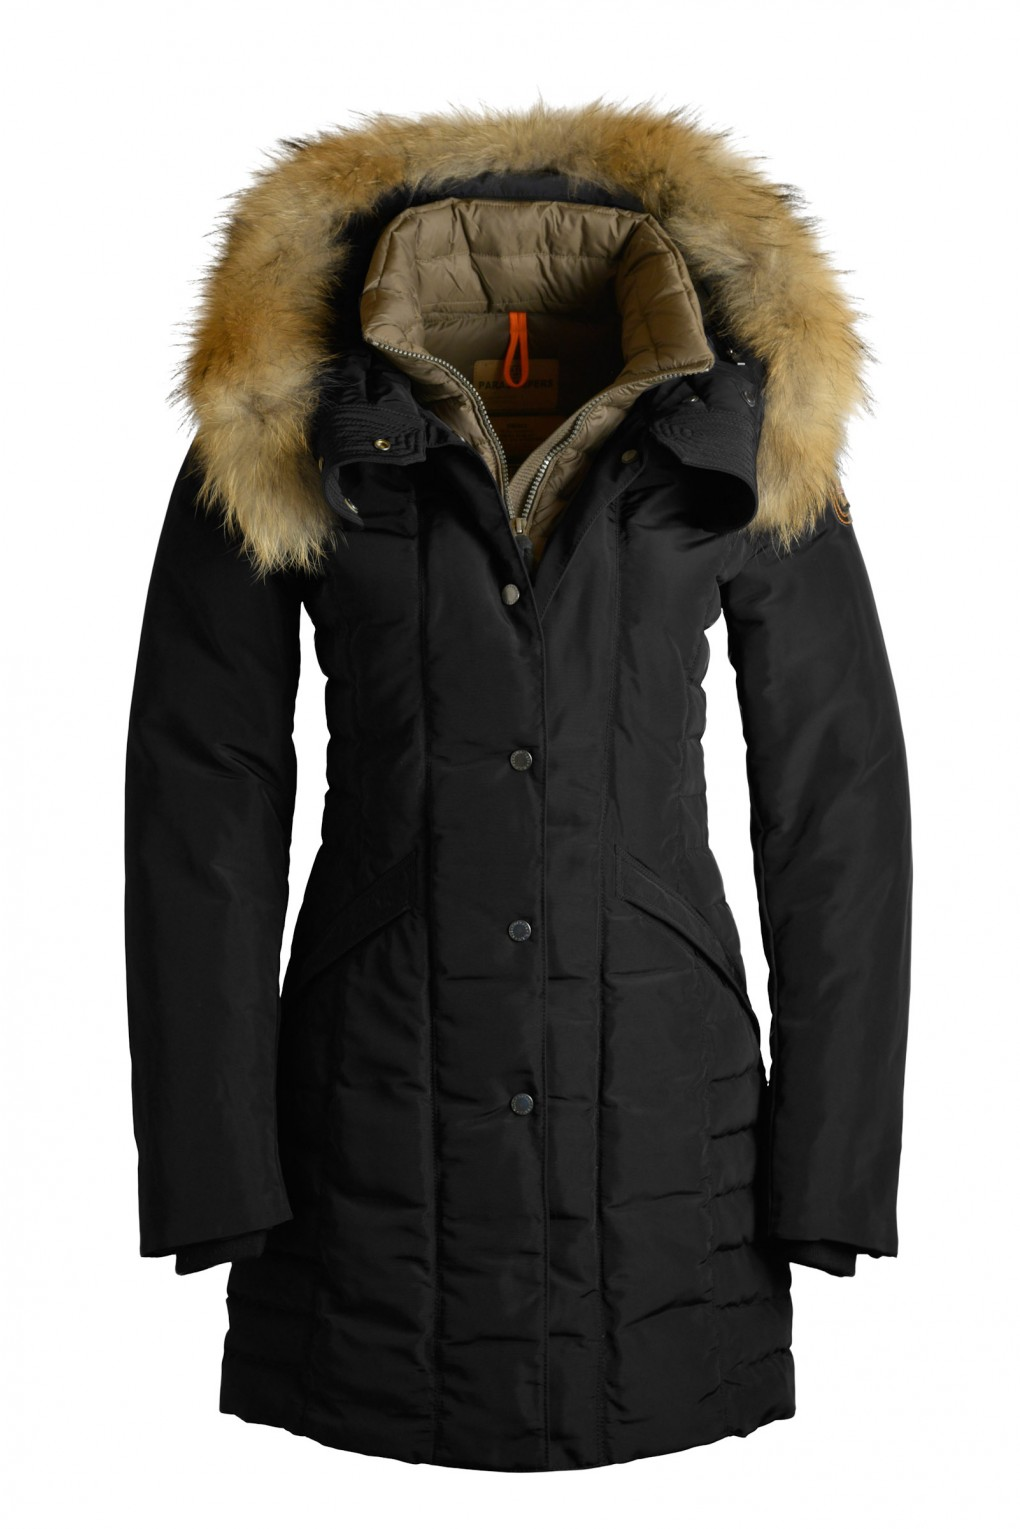 parajumpers ANGIE woman outerwear Black